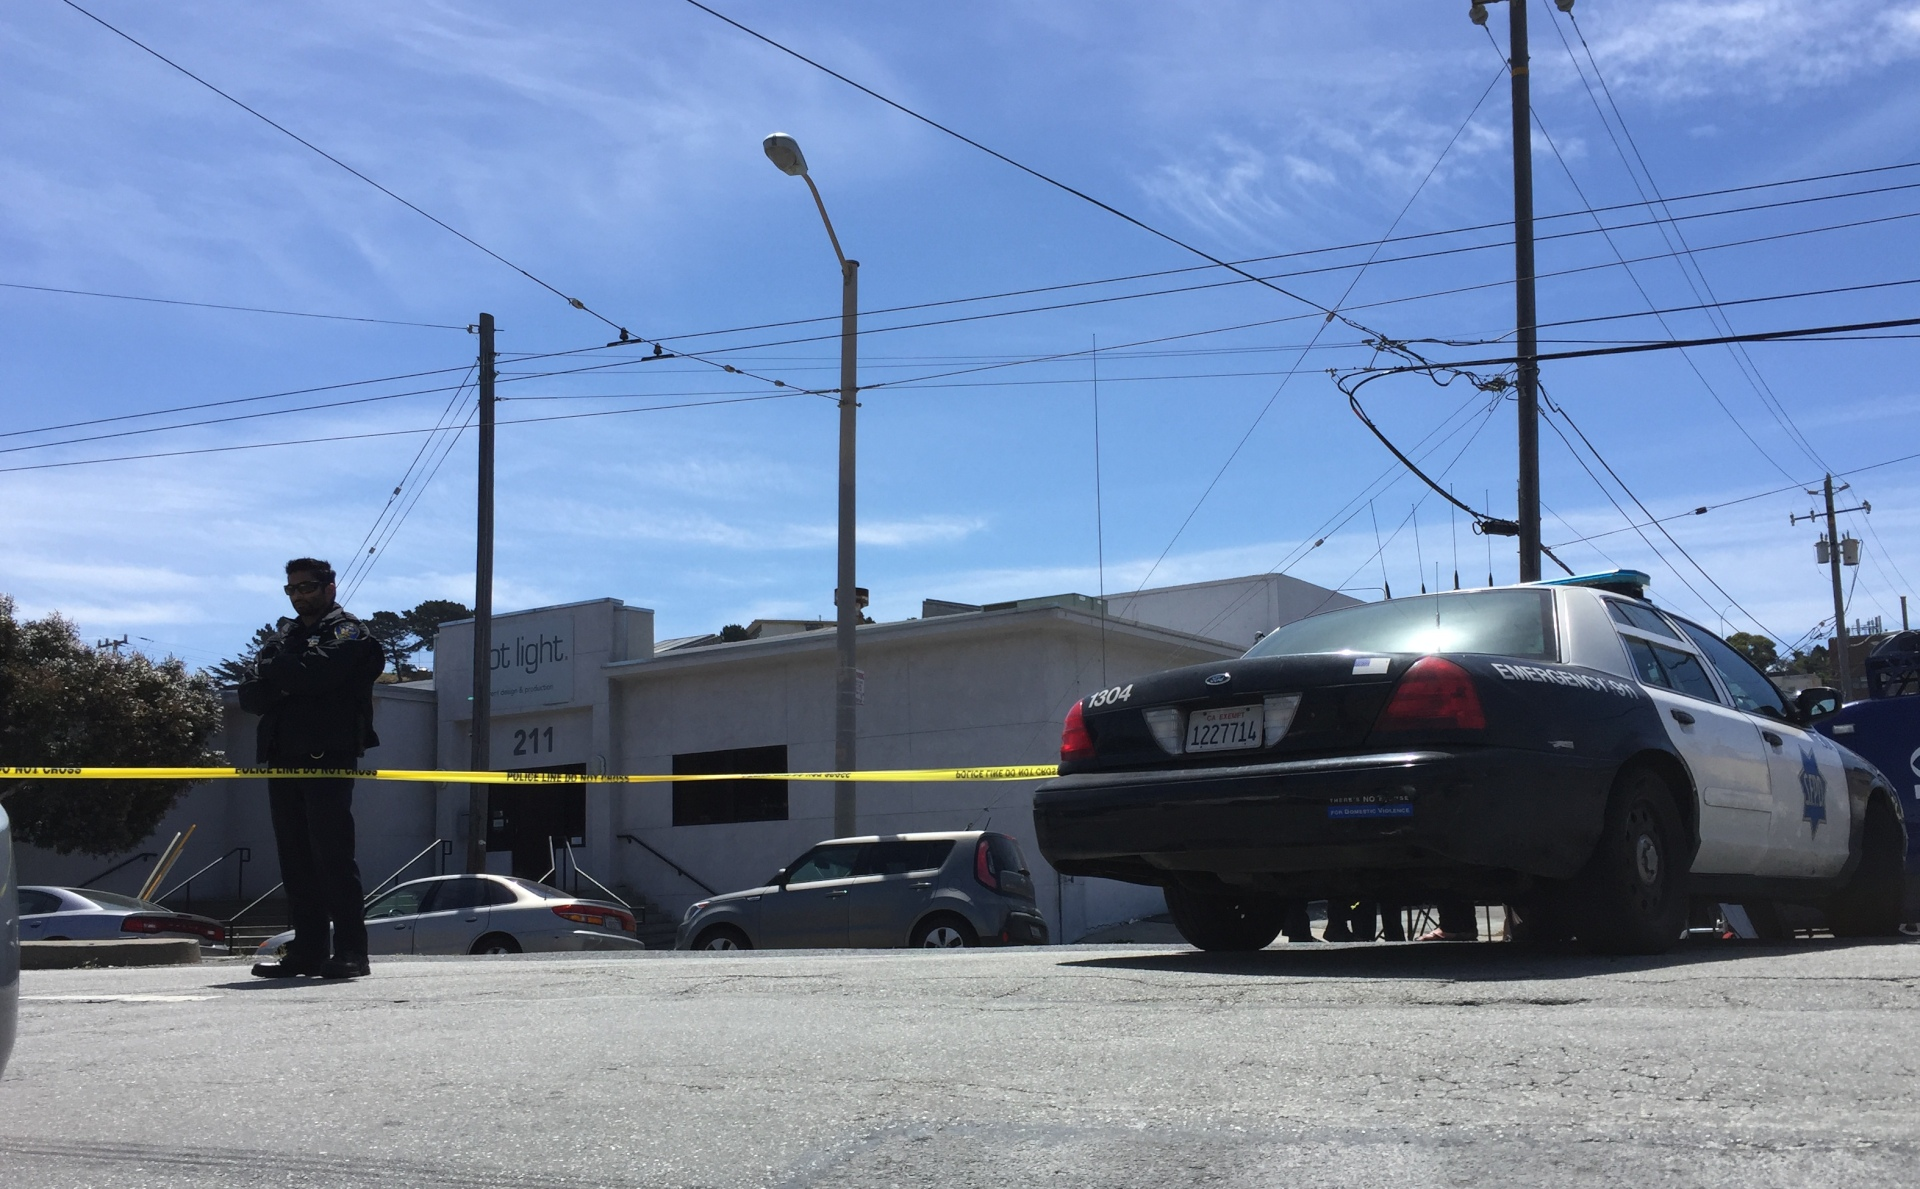 The scene of a fatal San Francisco officer-involved shooting on May 19, 2016 in the city's Bayview neighborhood. City officials later confirmed that Sgt. Jason Eng mortally wounded Jessica Williams, 29, when he fired a single gunshot as he and another officer attempted to remove Williams from a car that had been reported stolen.